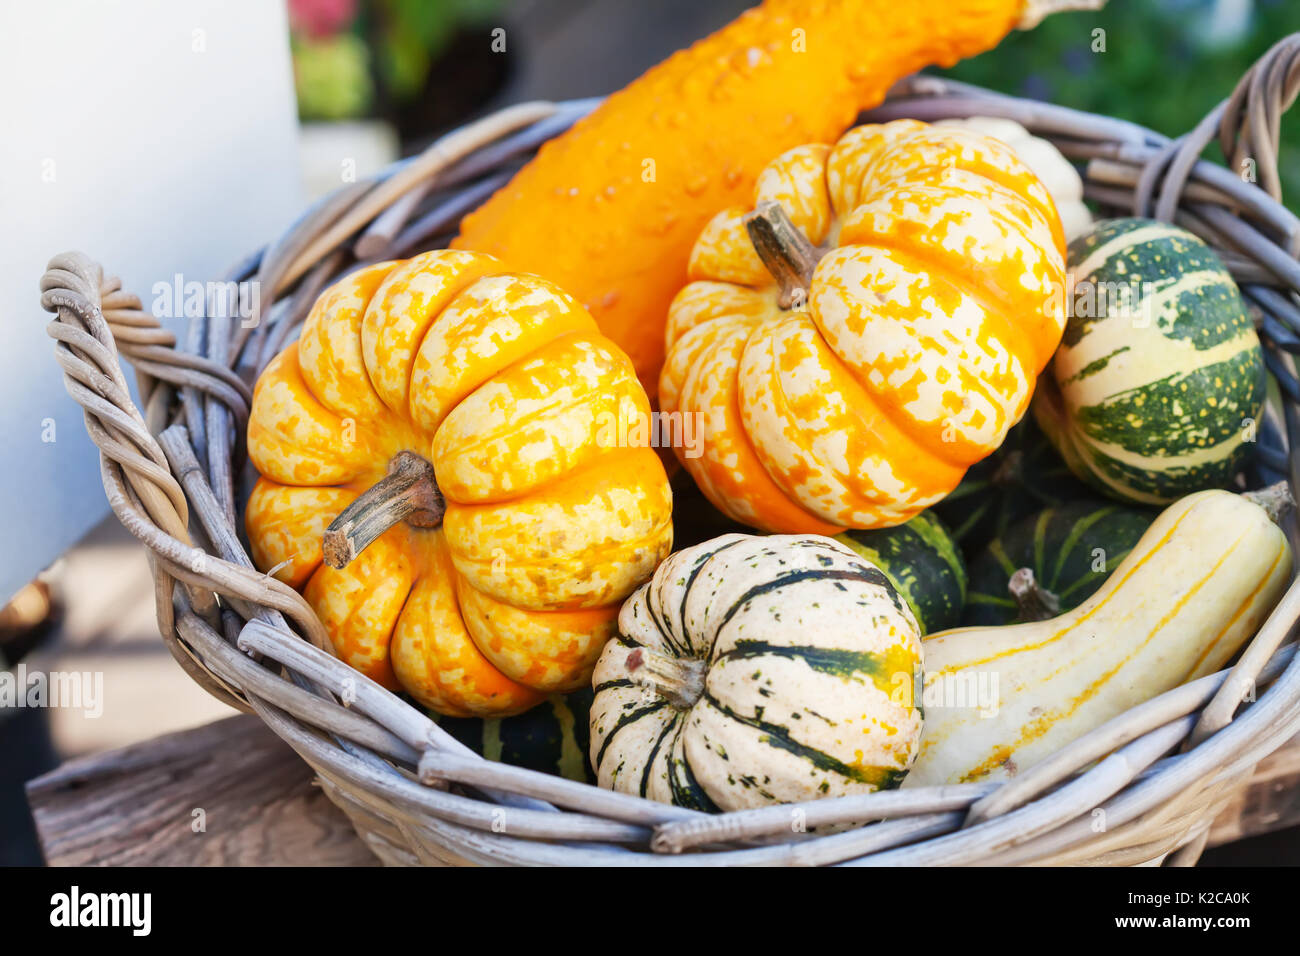 Food basket concept. Colorful halloween pumpkins in a wooden wicker. Autumn farmers harvest, thanksgiving day conceptual - Stock Image